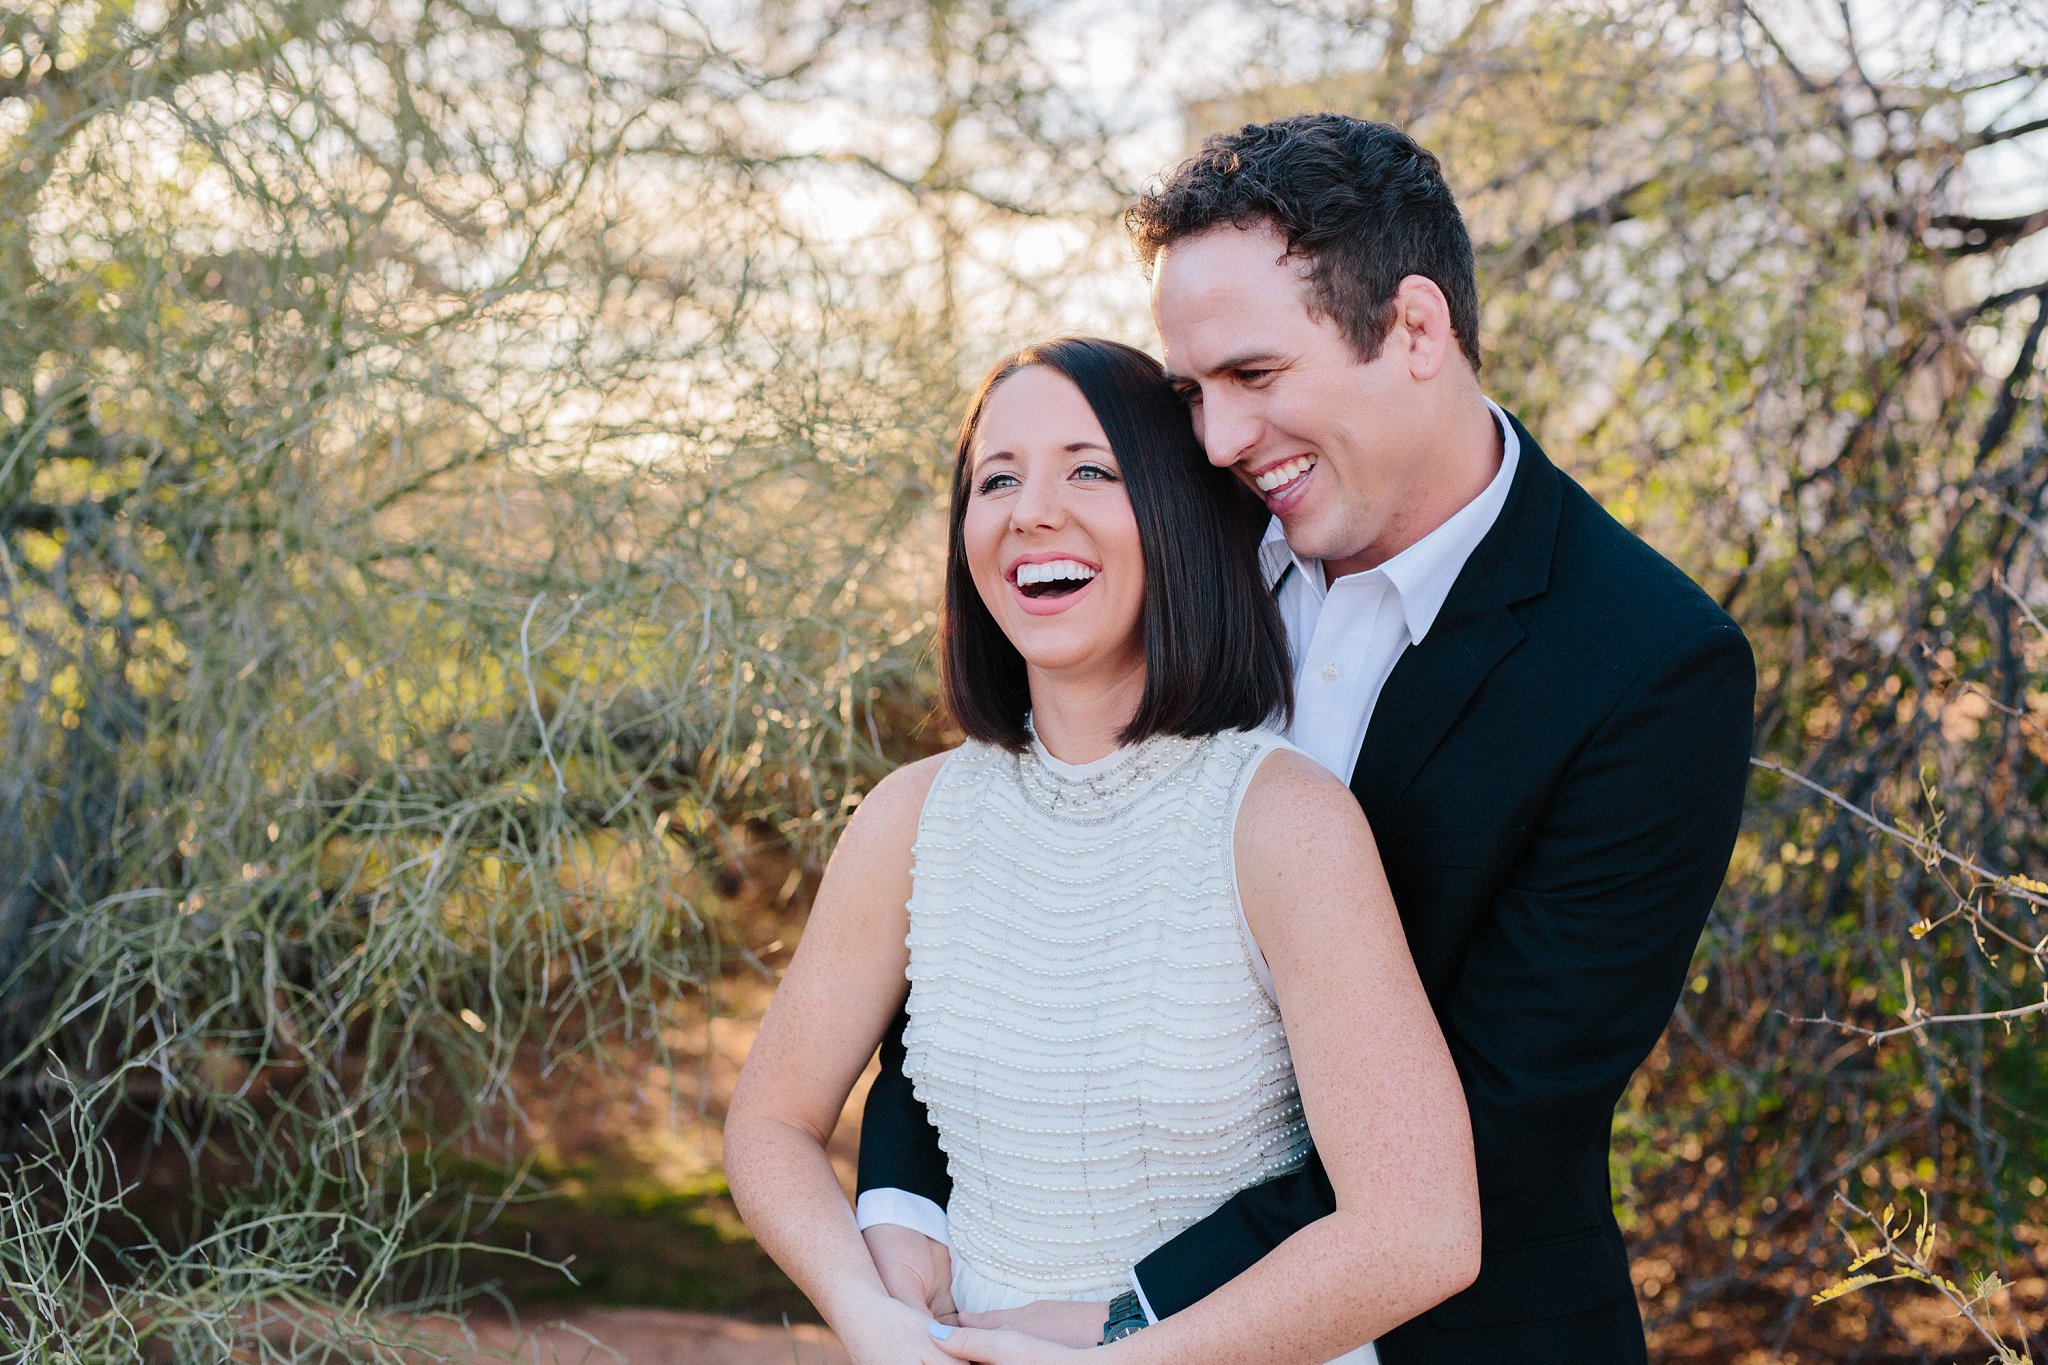 genuine natural candid elopement in Arizona desert